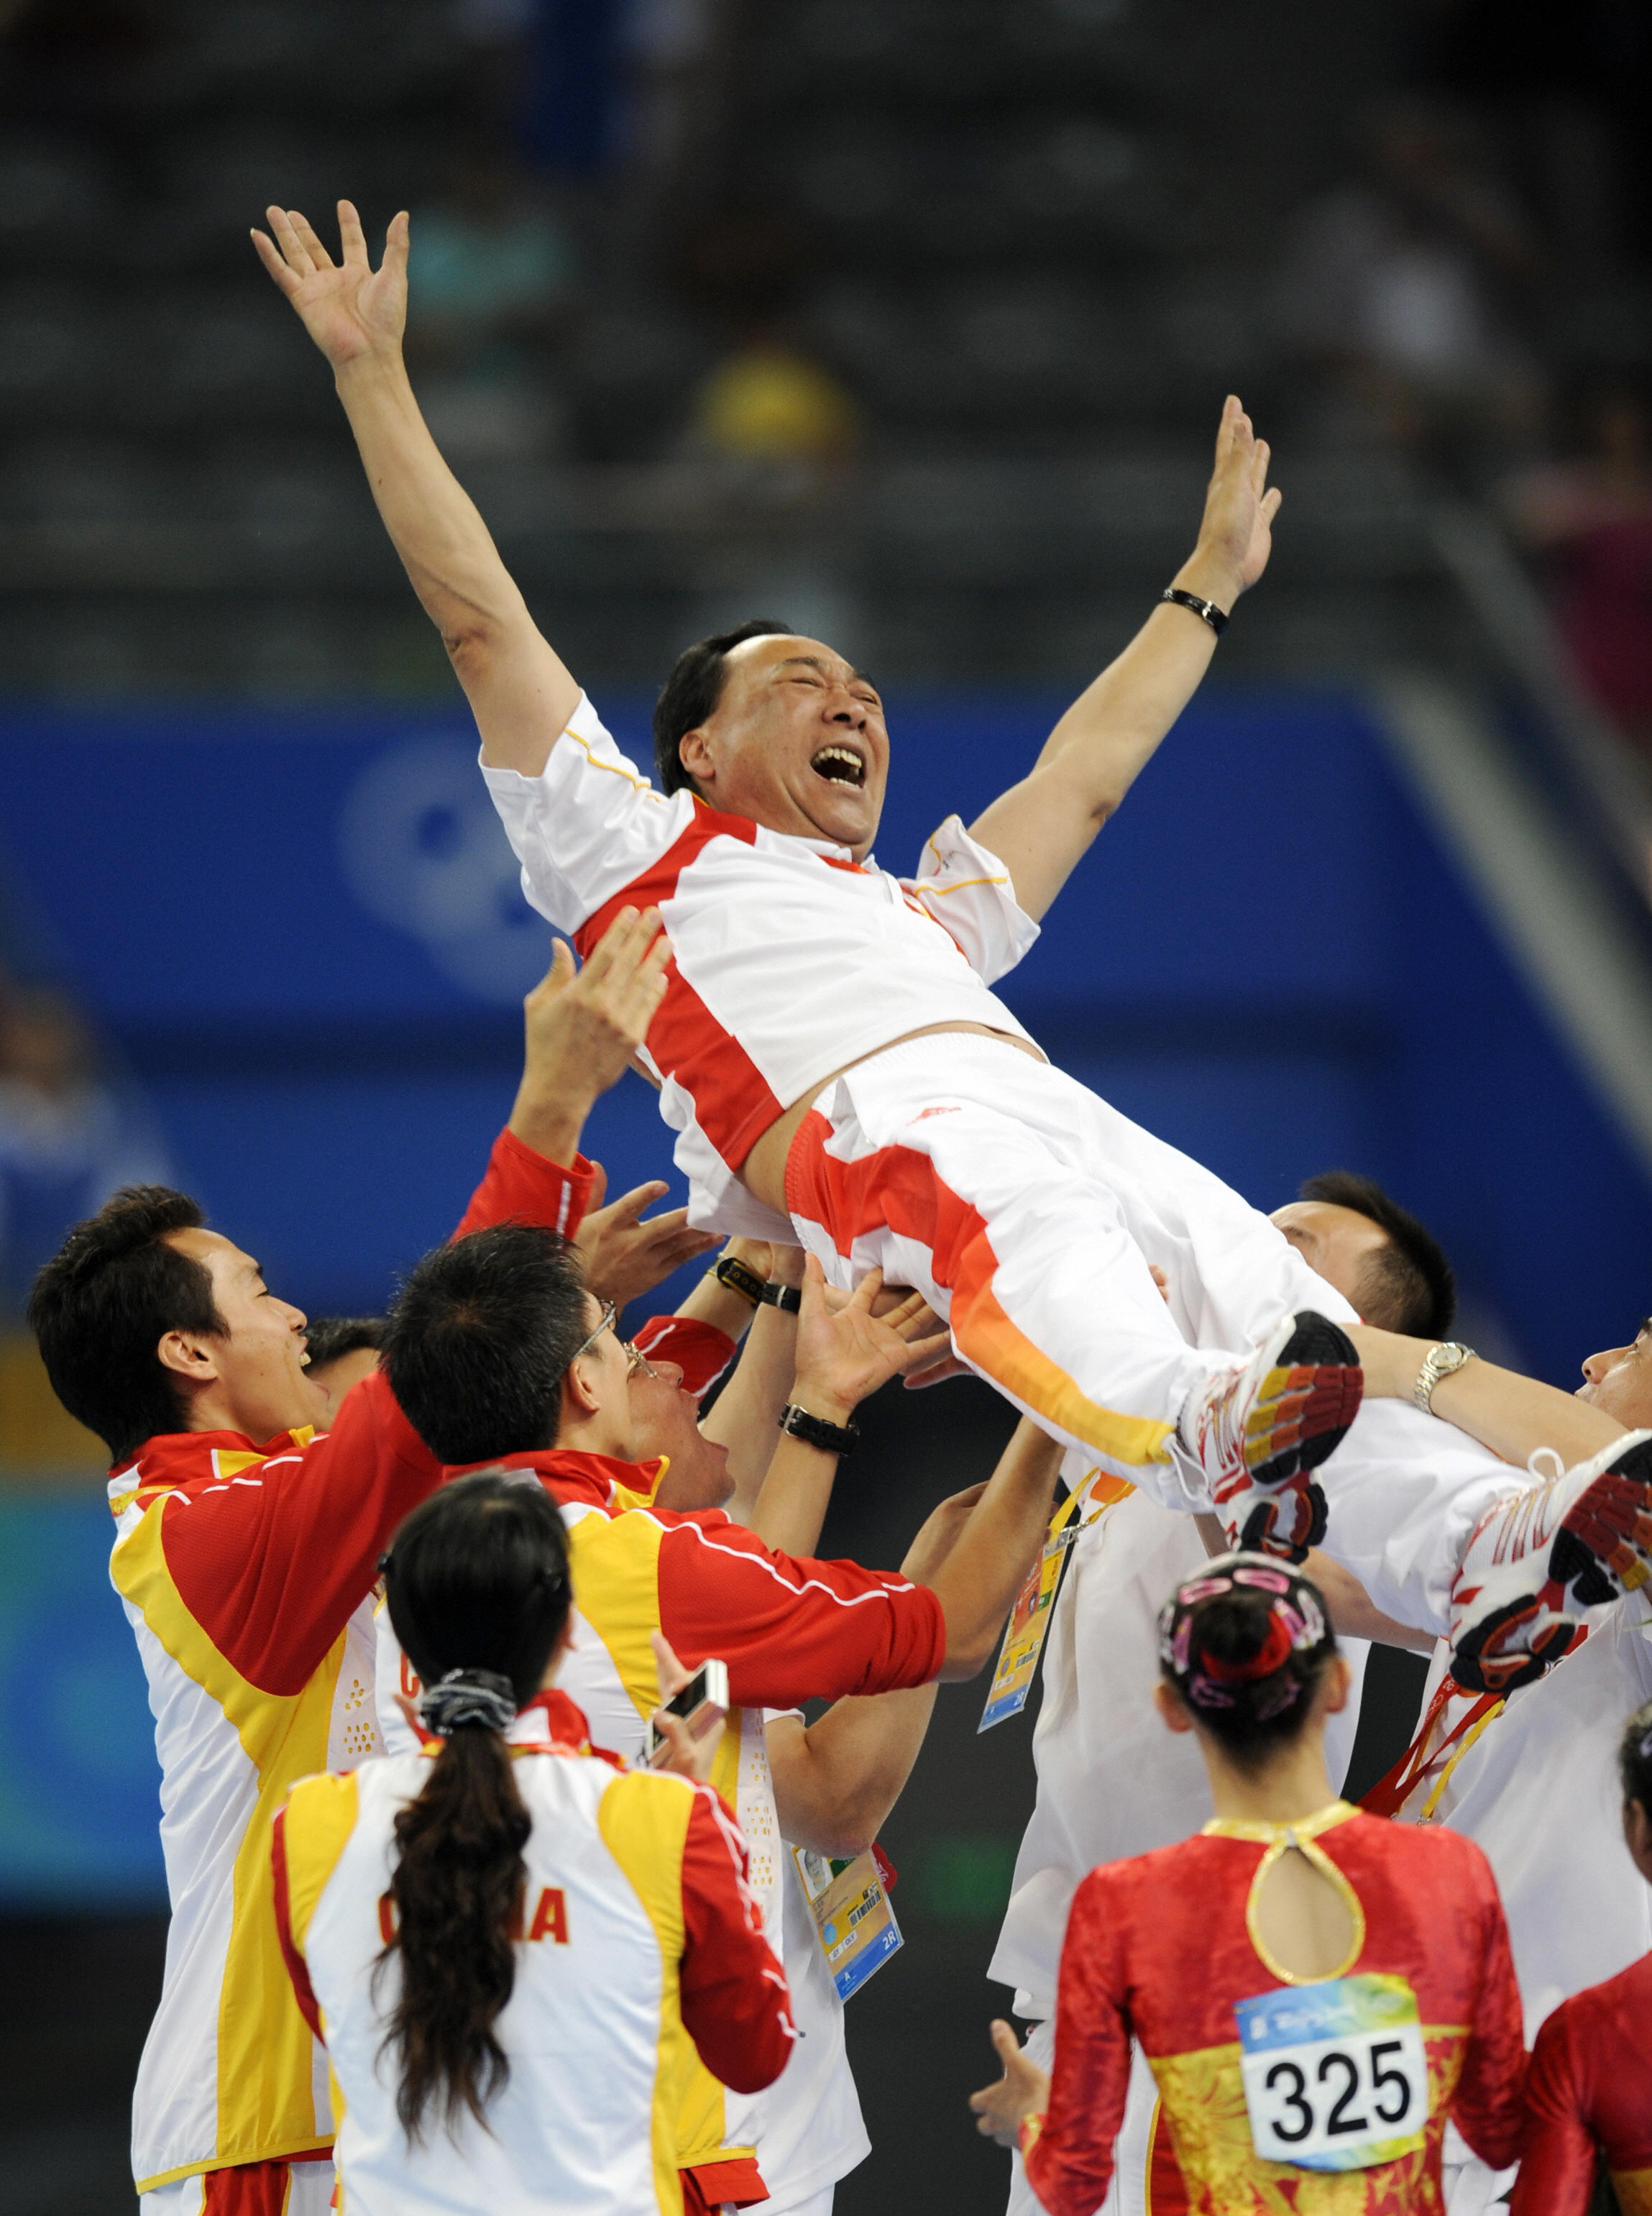 The Chinese team lift coach Gao Jian.